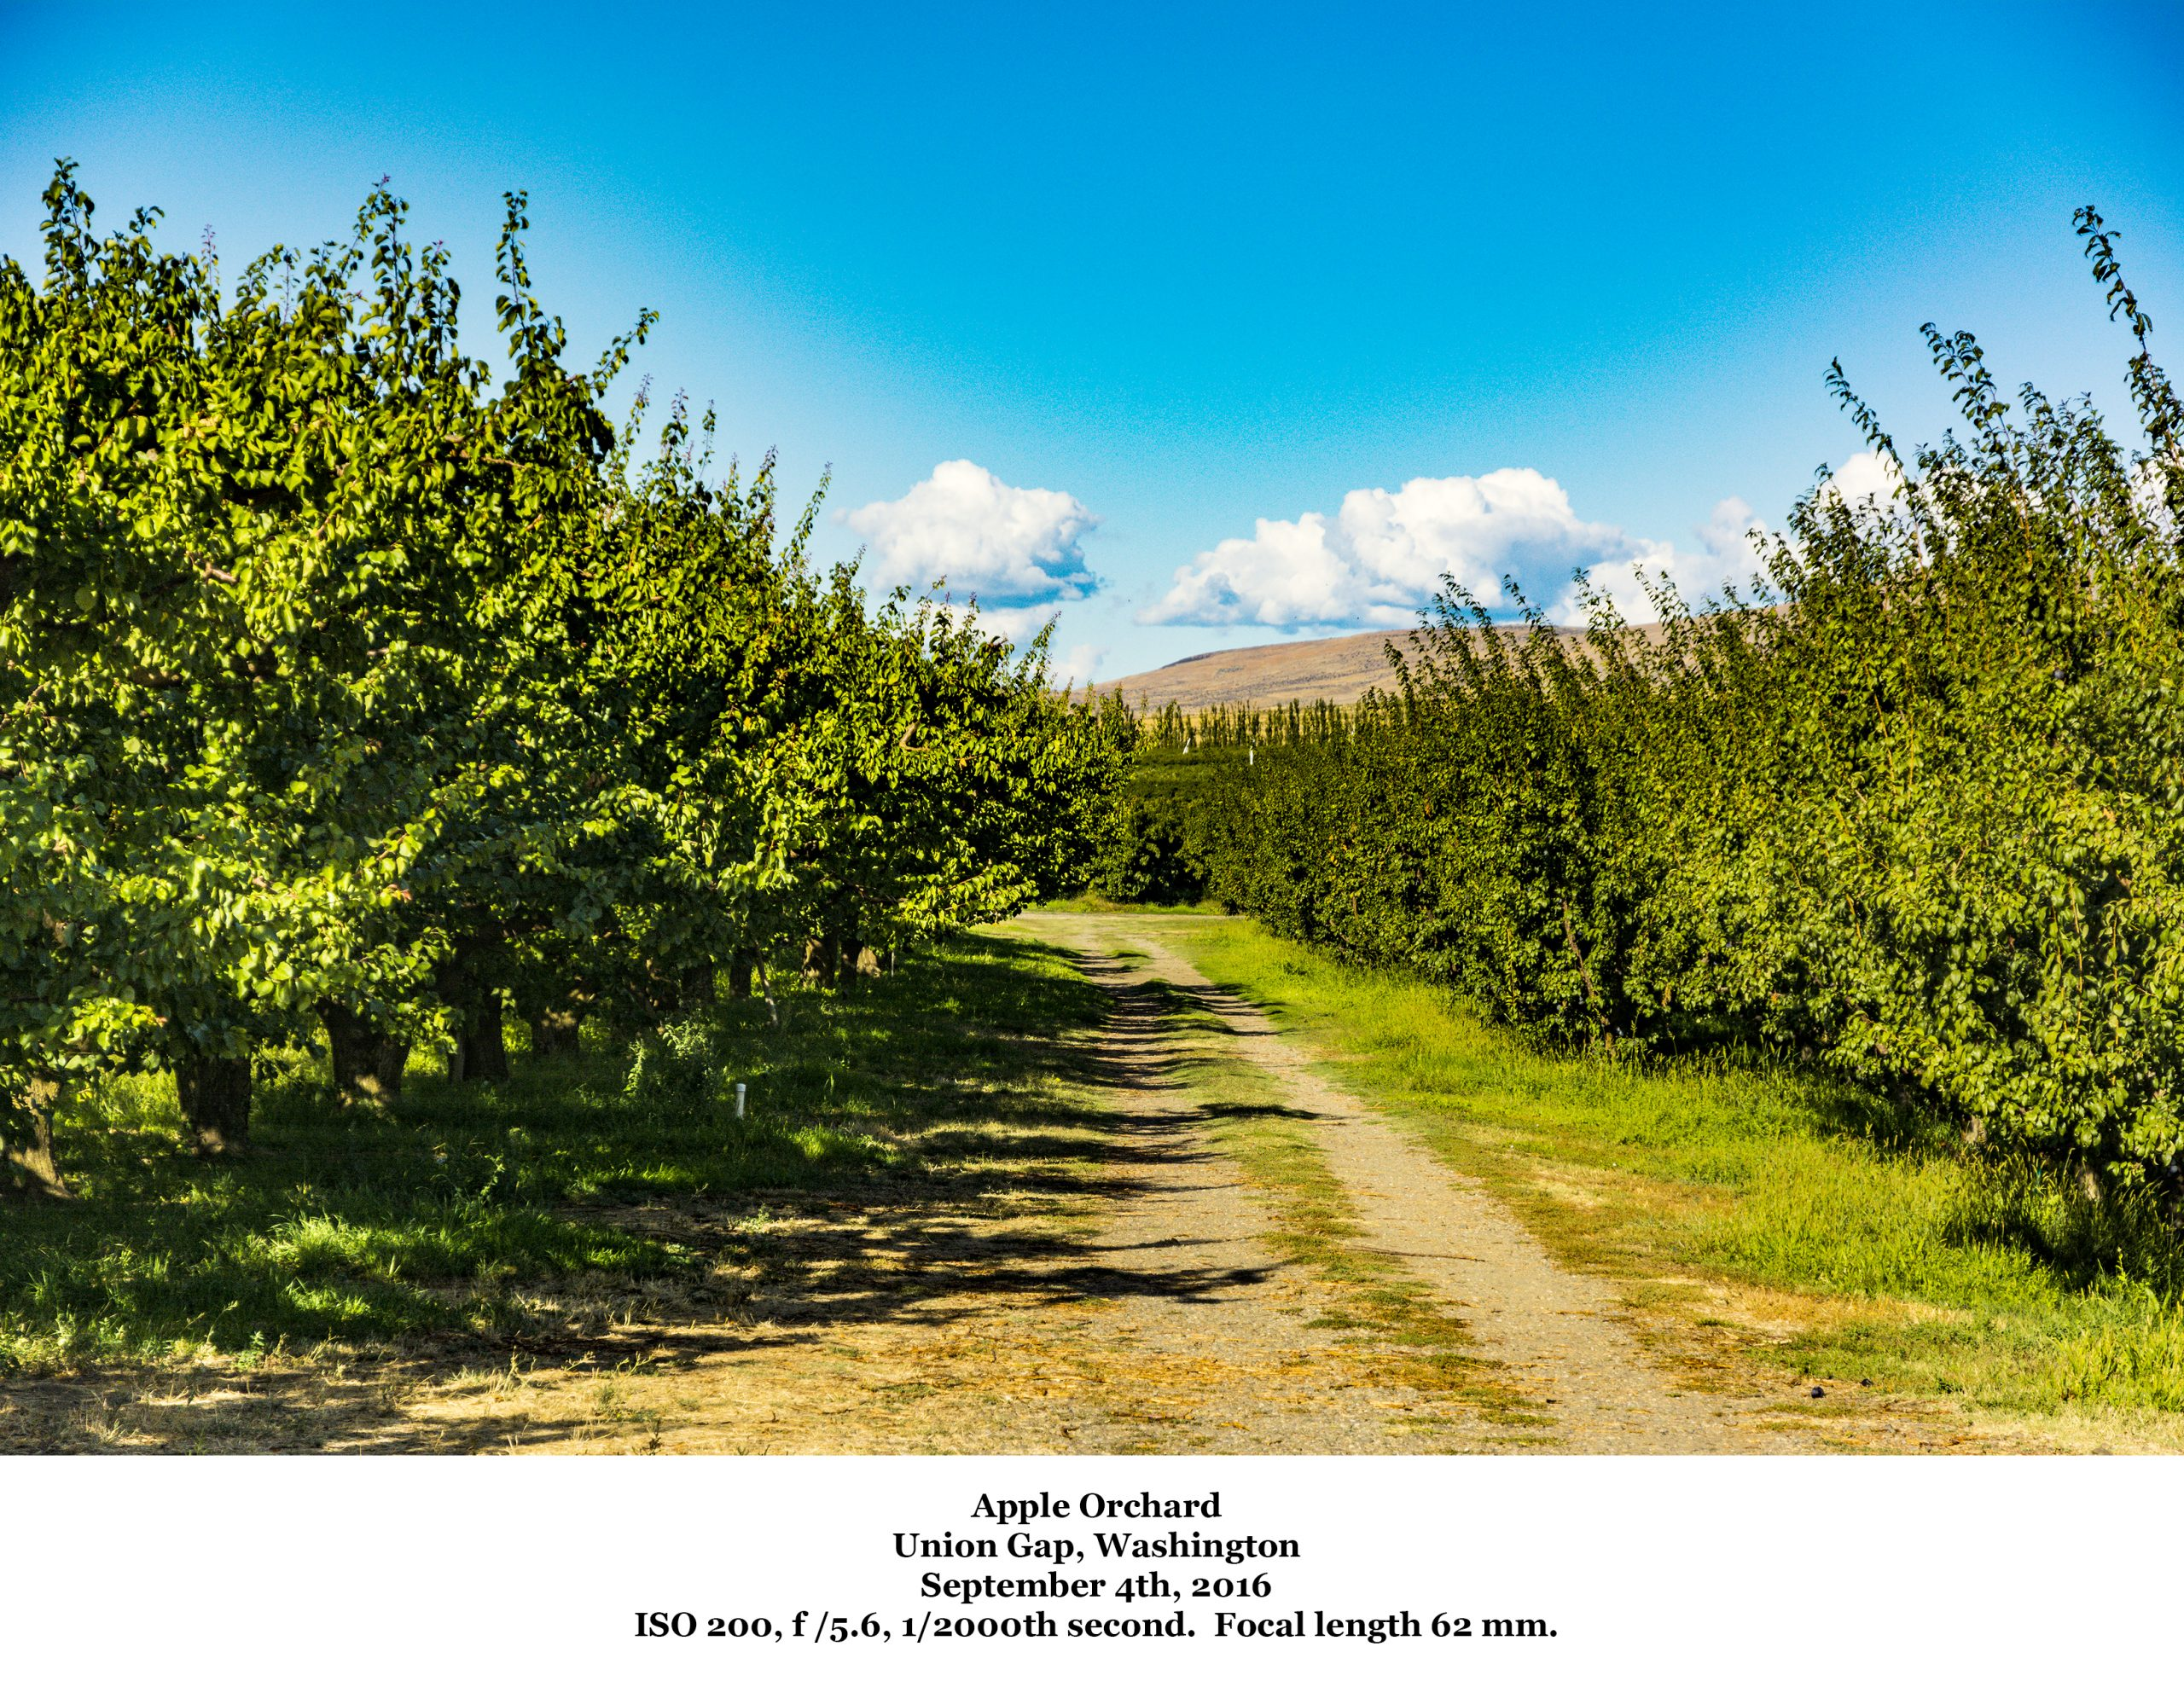 Apple orchards in the Yakima Valley